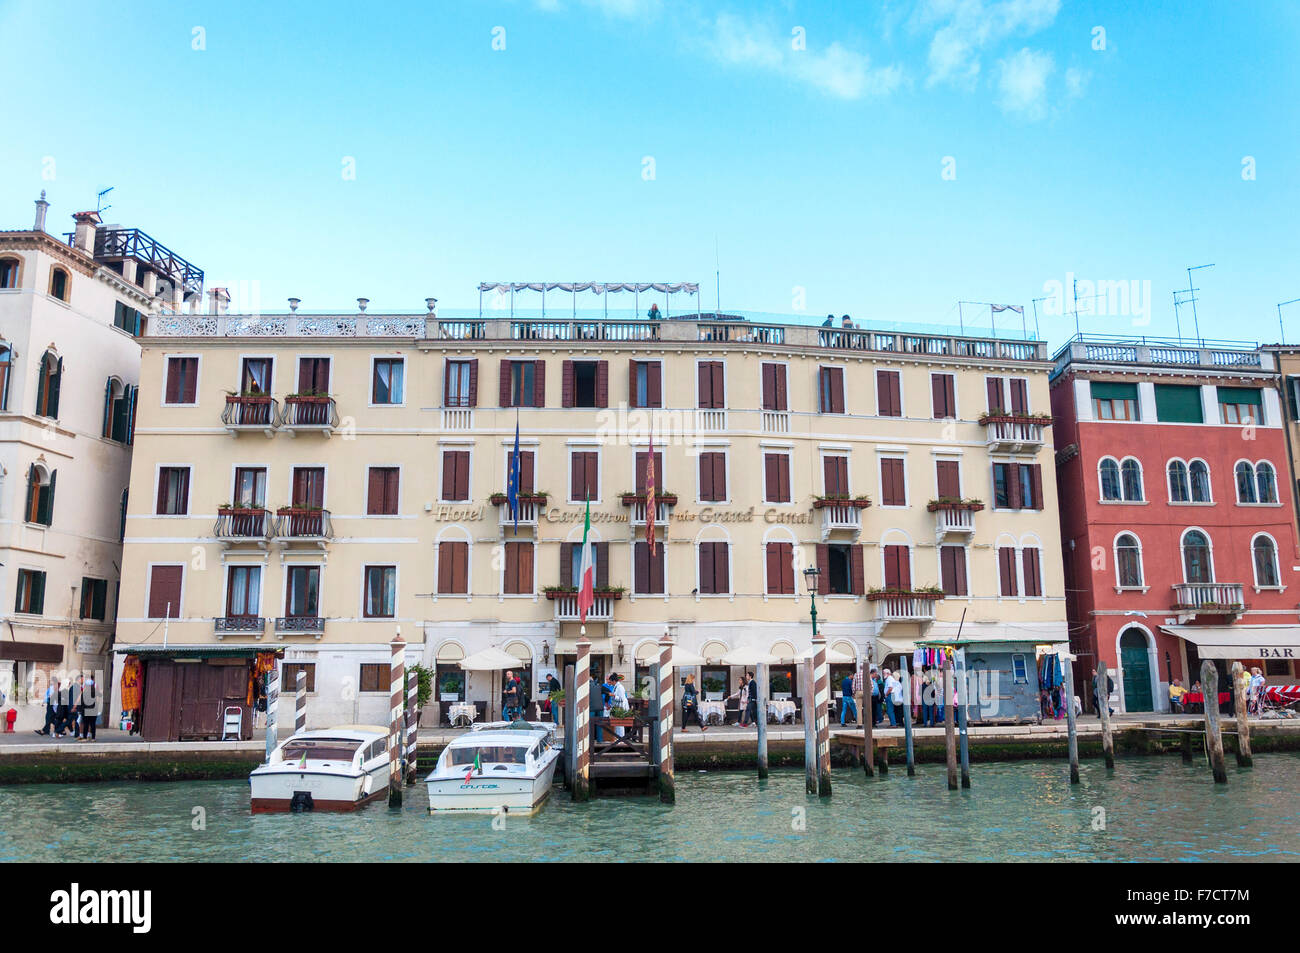 hotel carlton on the grand canal venice italy stock. Black Bedroom Furniture Sets. Home Design Ideas